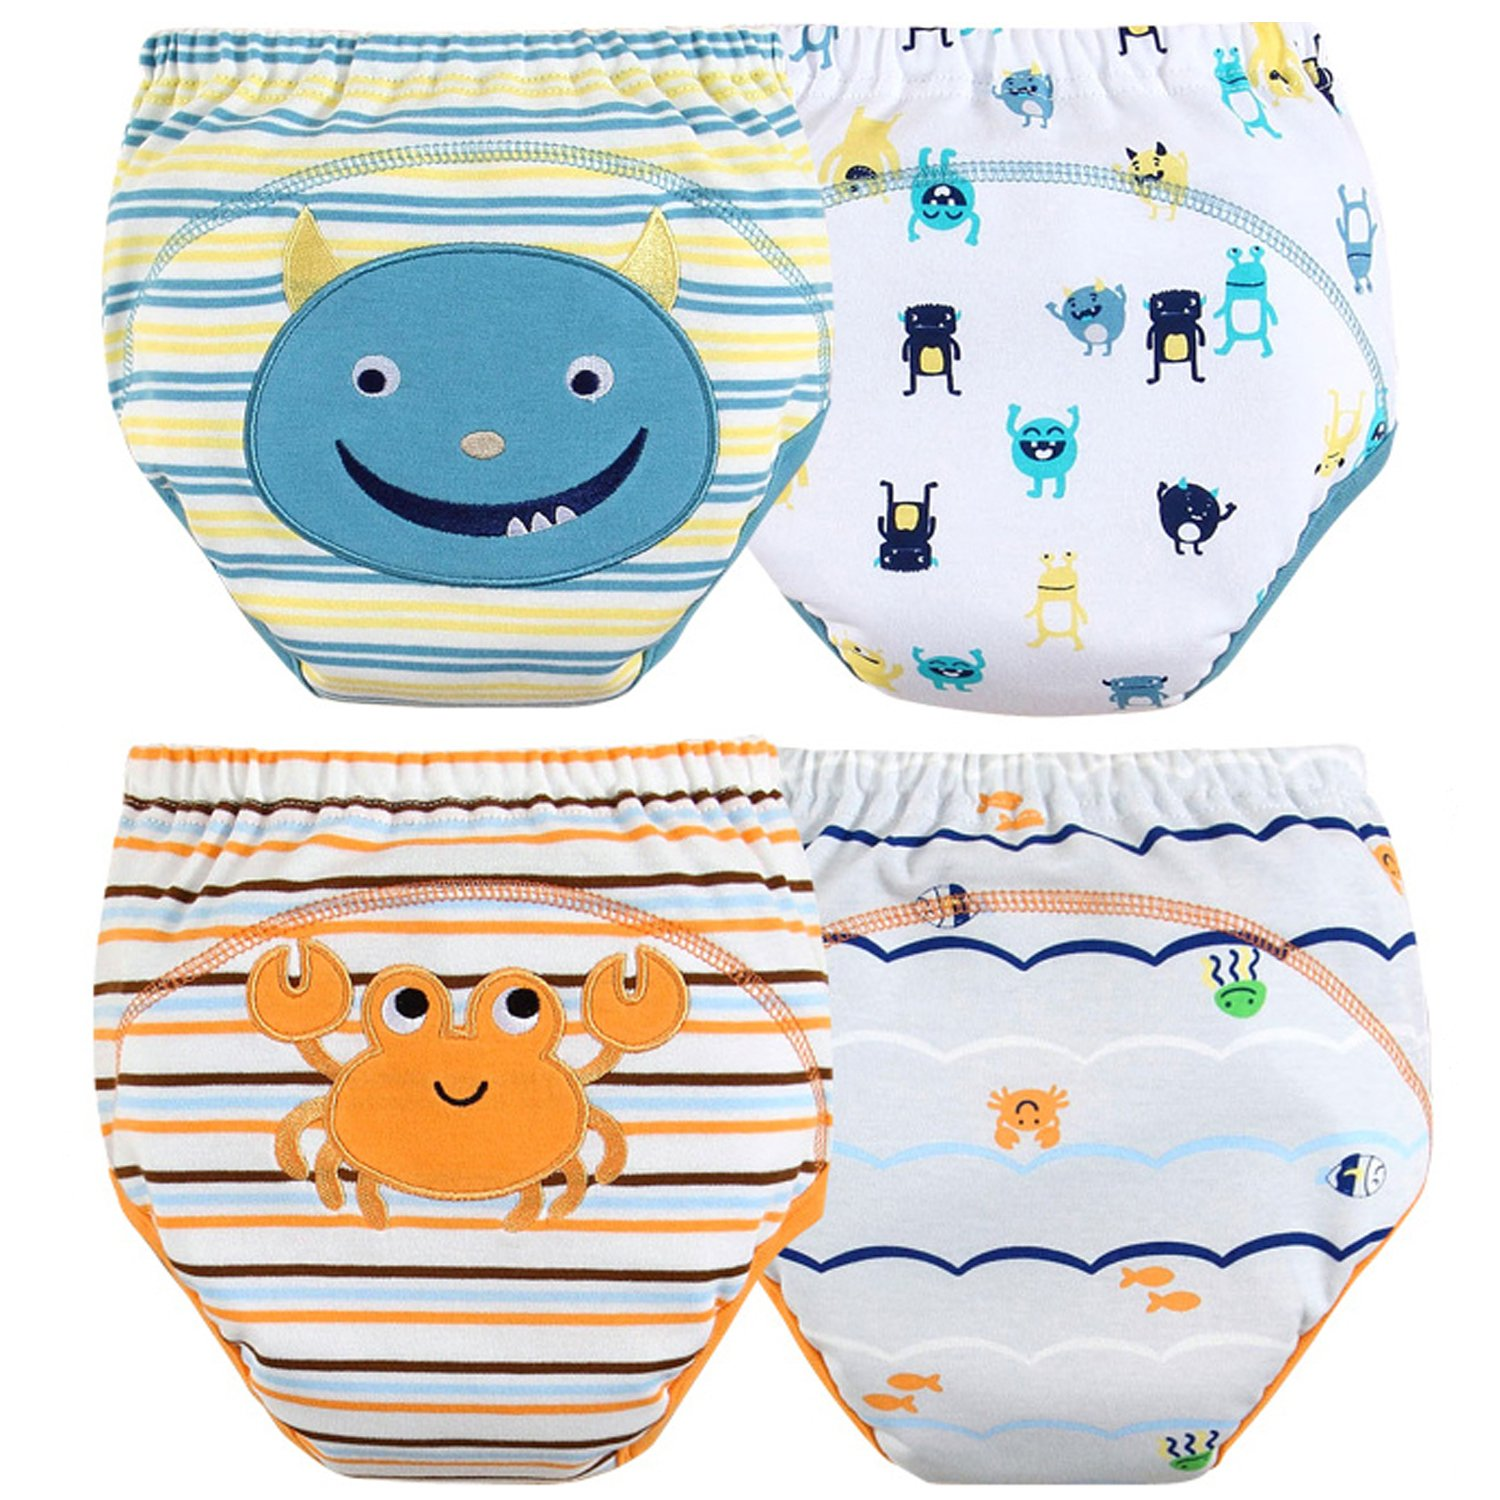 {NEW LAUNCH!} Toddler Training Pants/Underwear. Water-resistent, Best Quality|Reusable|Washable|Cutest Designs|Soft Cotton|3 layers|4 different designs in a pack